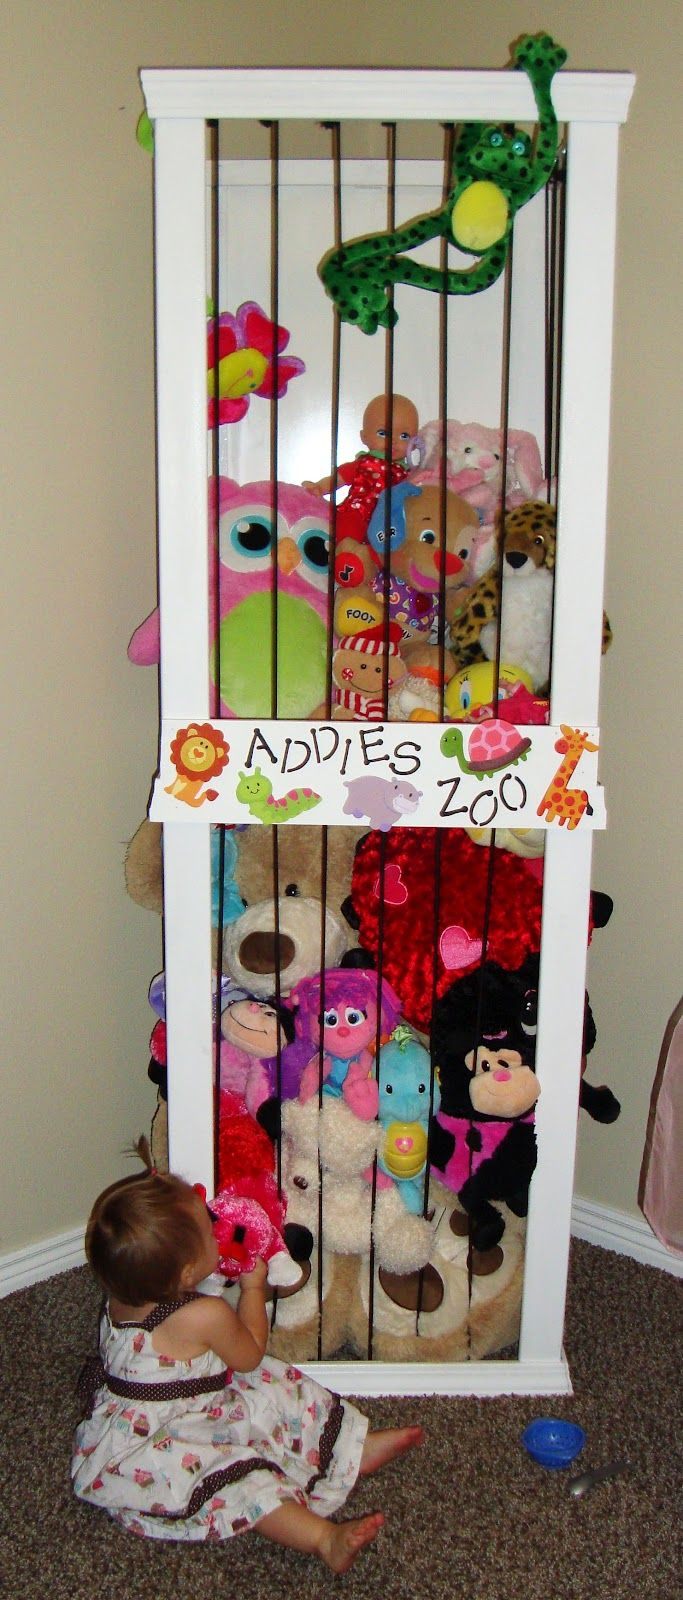 Stuffed animal case, what a great way to store stuffed animals